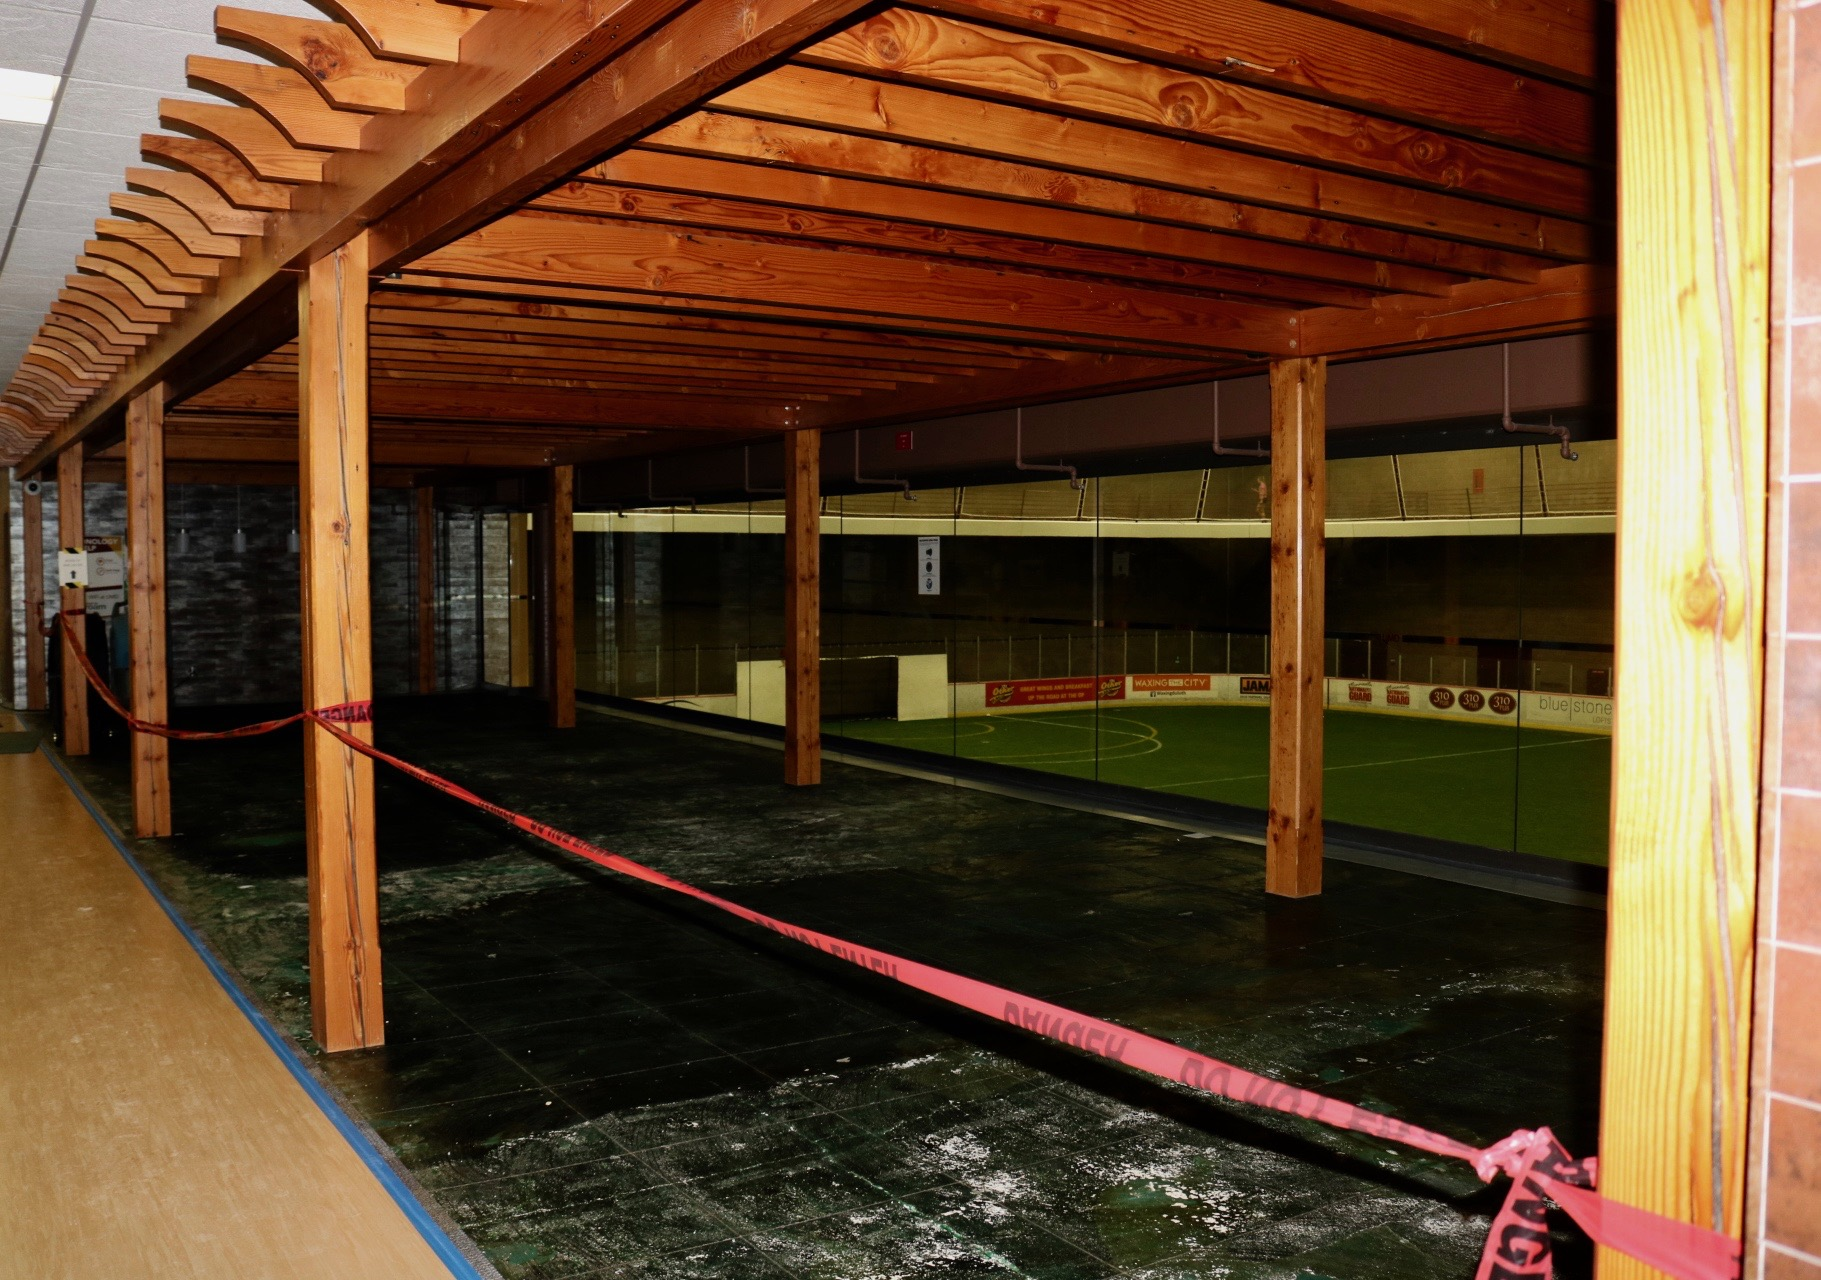 Carpeting in the ice rink study lounge had to be pulled for mold concerns. Photo by Madison Hunter